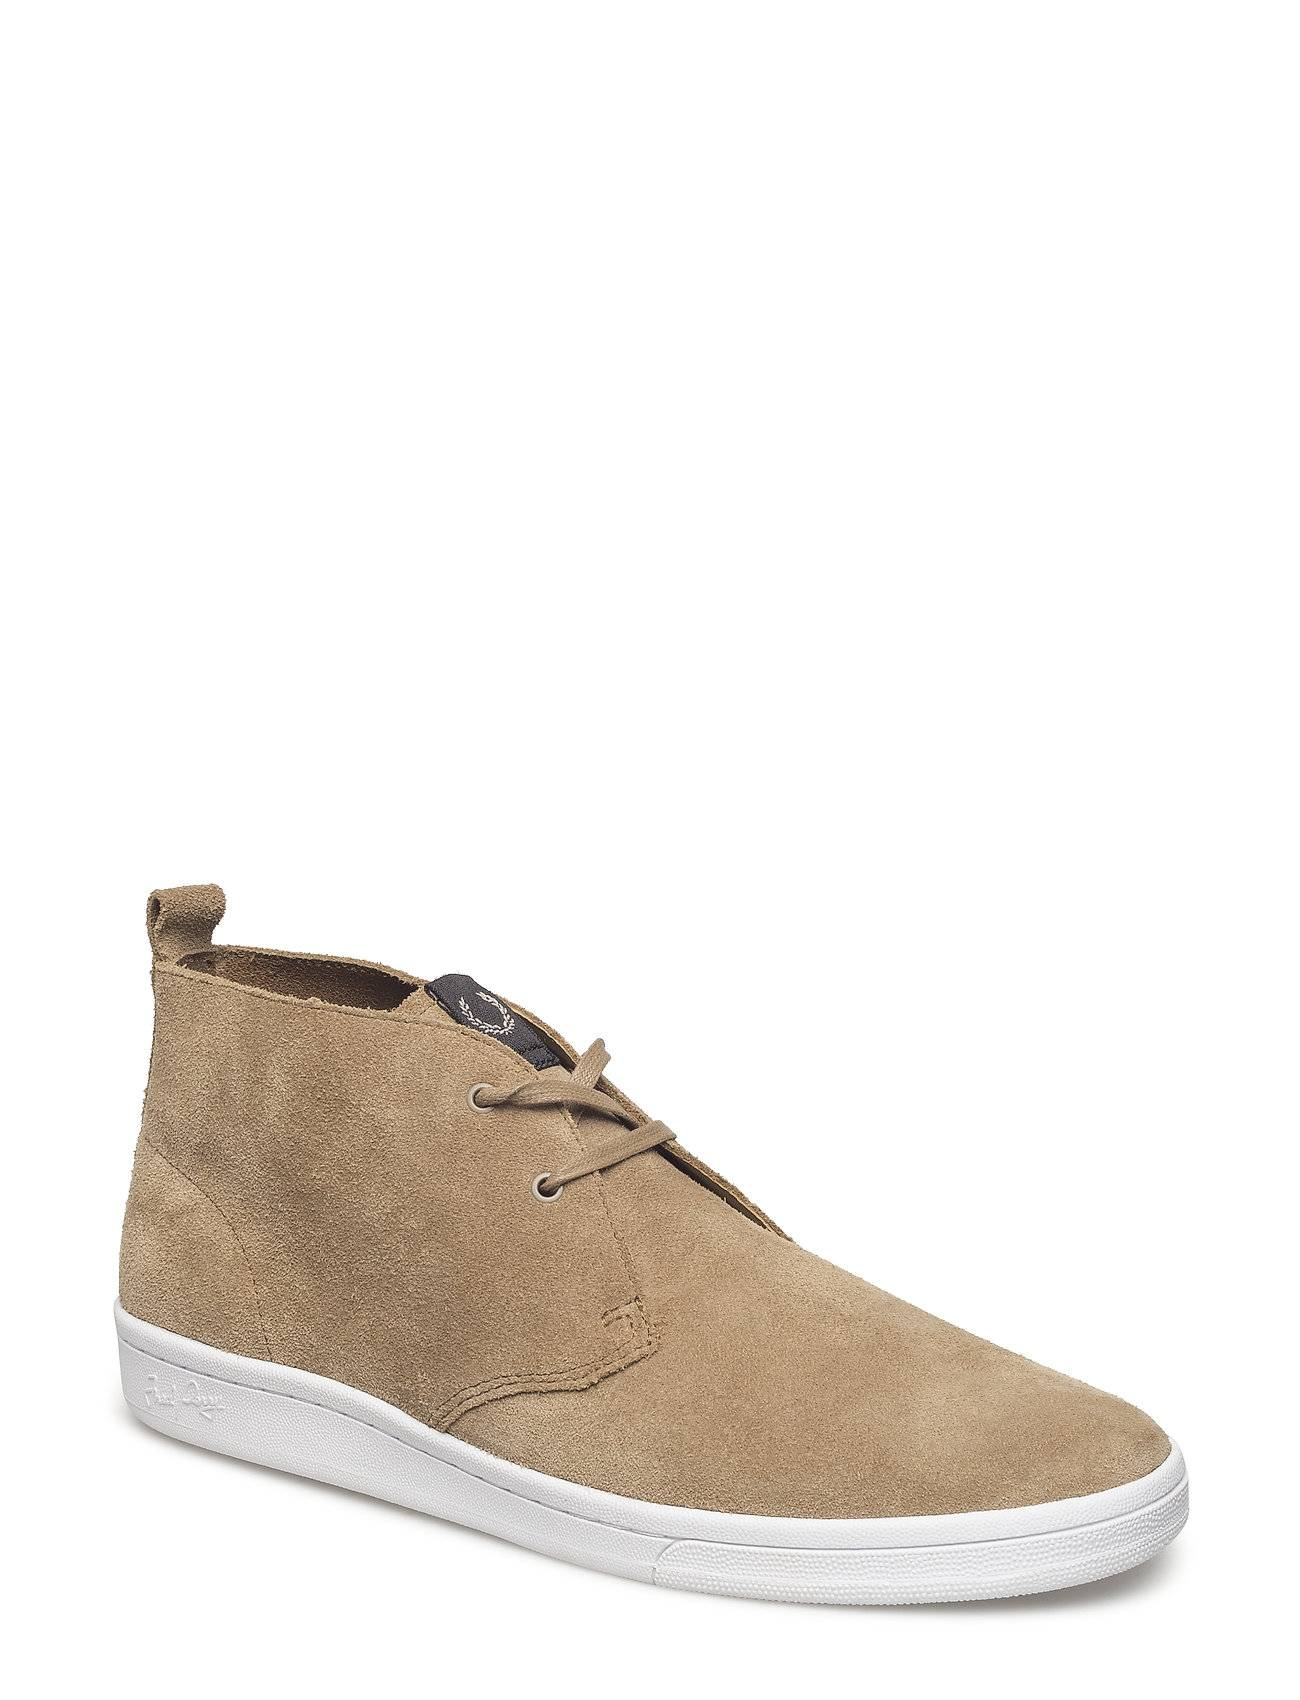 Fred Perry B721 X Gc Chukka Suede